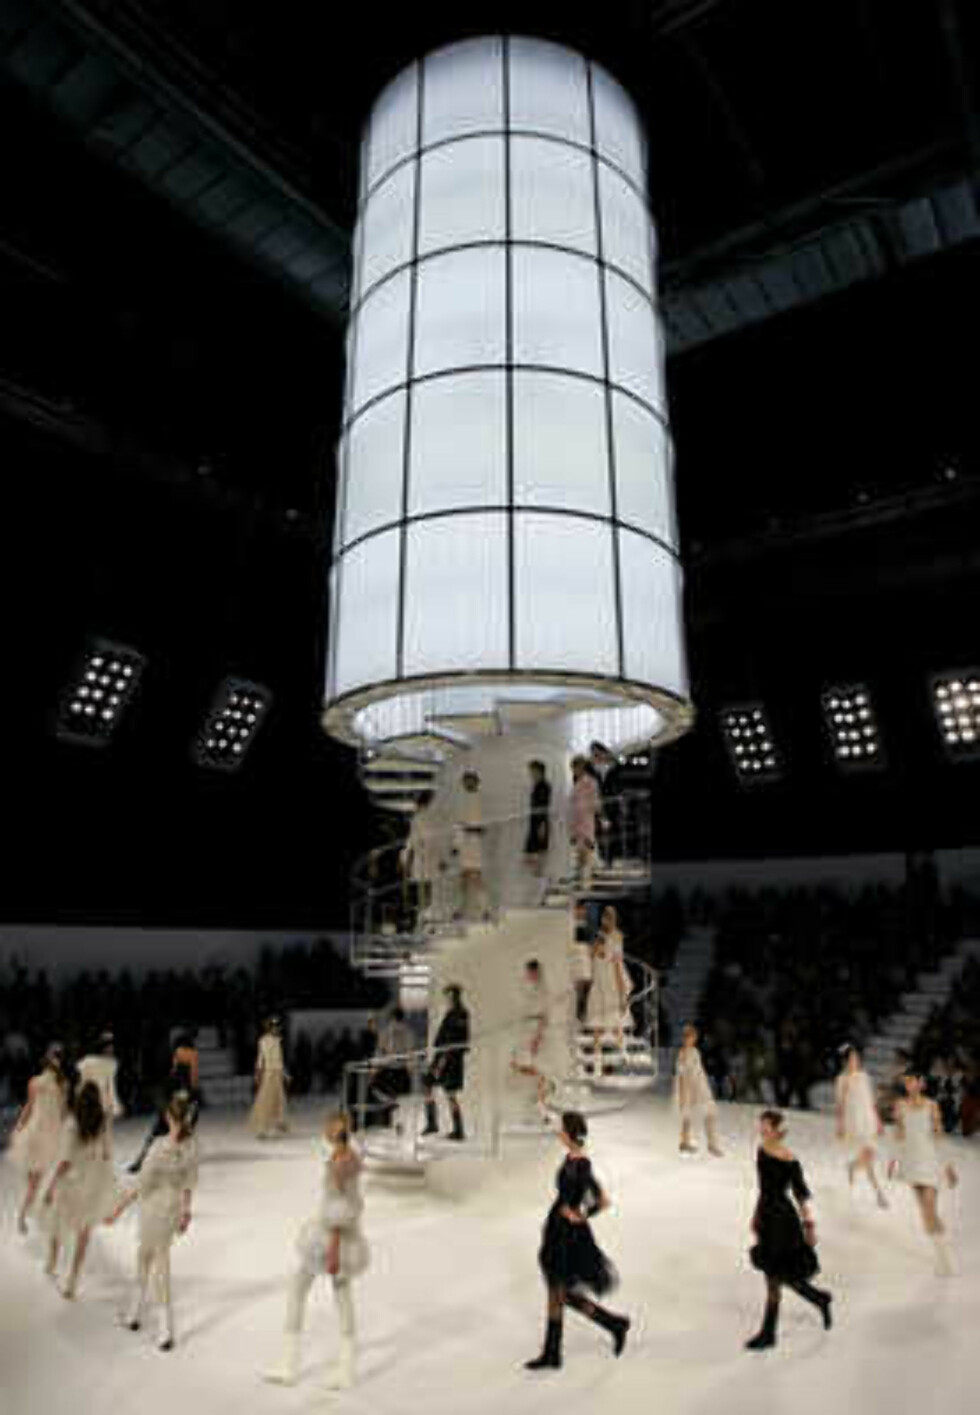 Models present the creations of the German designer Karl Lagerfeld during the Chanel 2006 Spring-Summer Haute Couture fashion show in Hong Kong Friday, March 24, 2006.  (AP Photo/Kin Cheung) Foto: AP